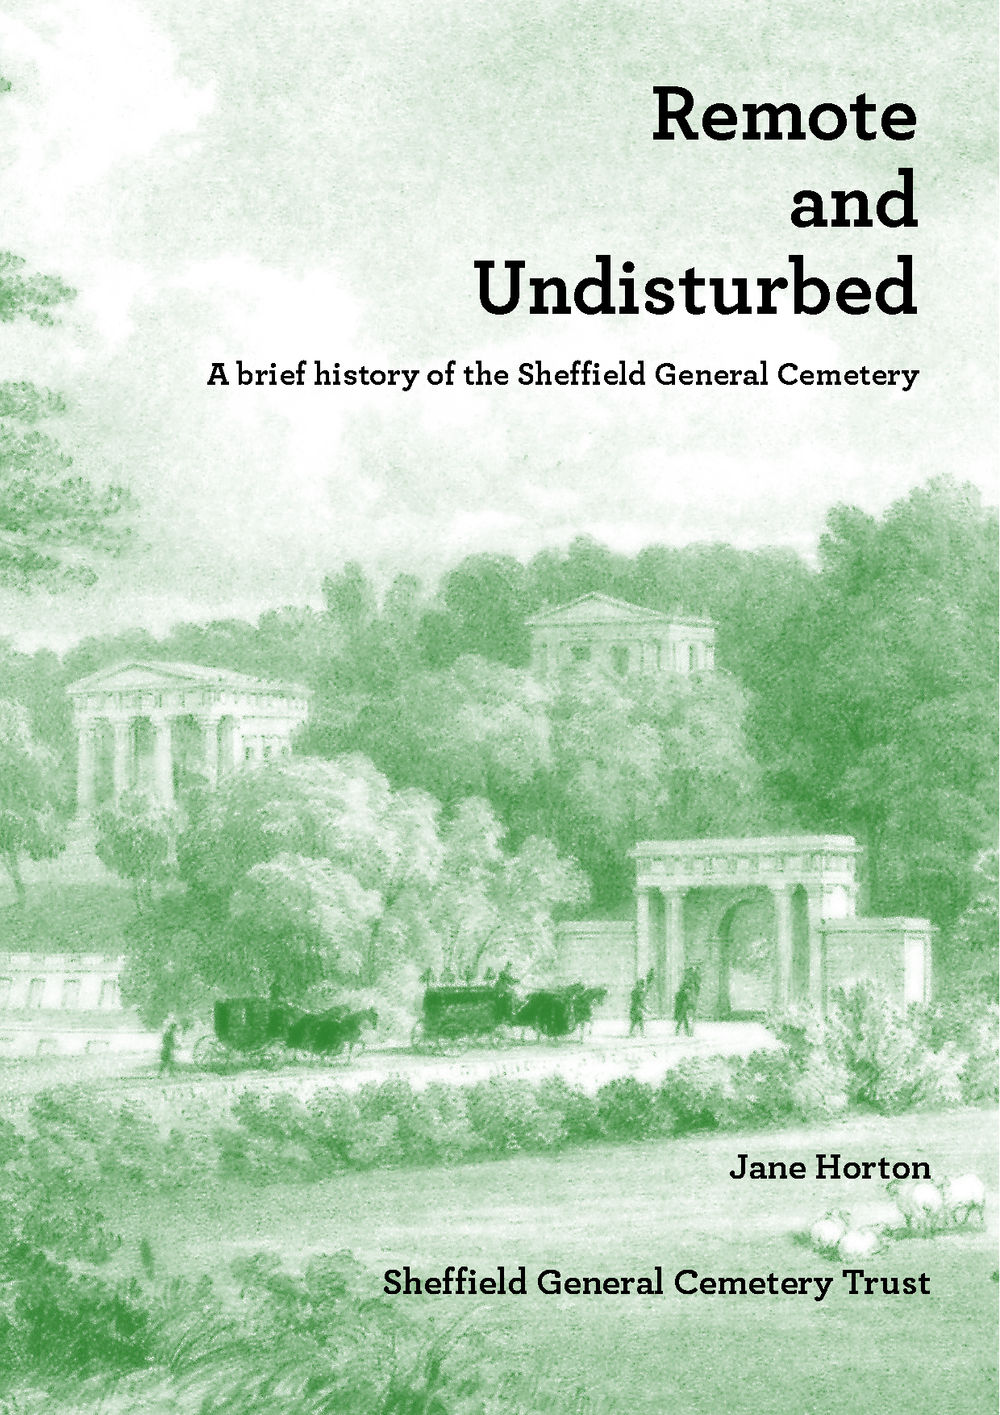 Remote and Undisturbed – Jane Horton    A brief history of the Sheffield General Cemetery   The Trust's best selling book was completely revised and updated in 2014. It traces the history of the Cemetery from its Victorian heyday through its decline and dereliction to its eventual restoration into the popular Cemetery Park of today. The architecture of the buildings and landscape are detailed and the role of eminent designers, Samuel Worth, Robert Marnock and William Flockton. Famous Sheffield people buried here are highlighted. The book outlines the development of cemeteries and gives an insight into Victorian social history.  Illustrated with over 40 photographs, archive drawings and maps.   Price £7.95